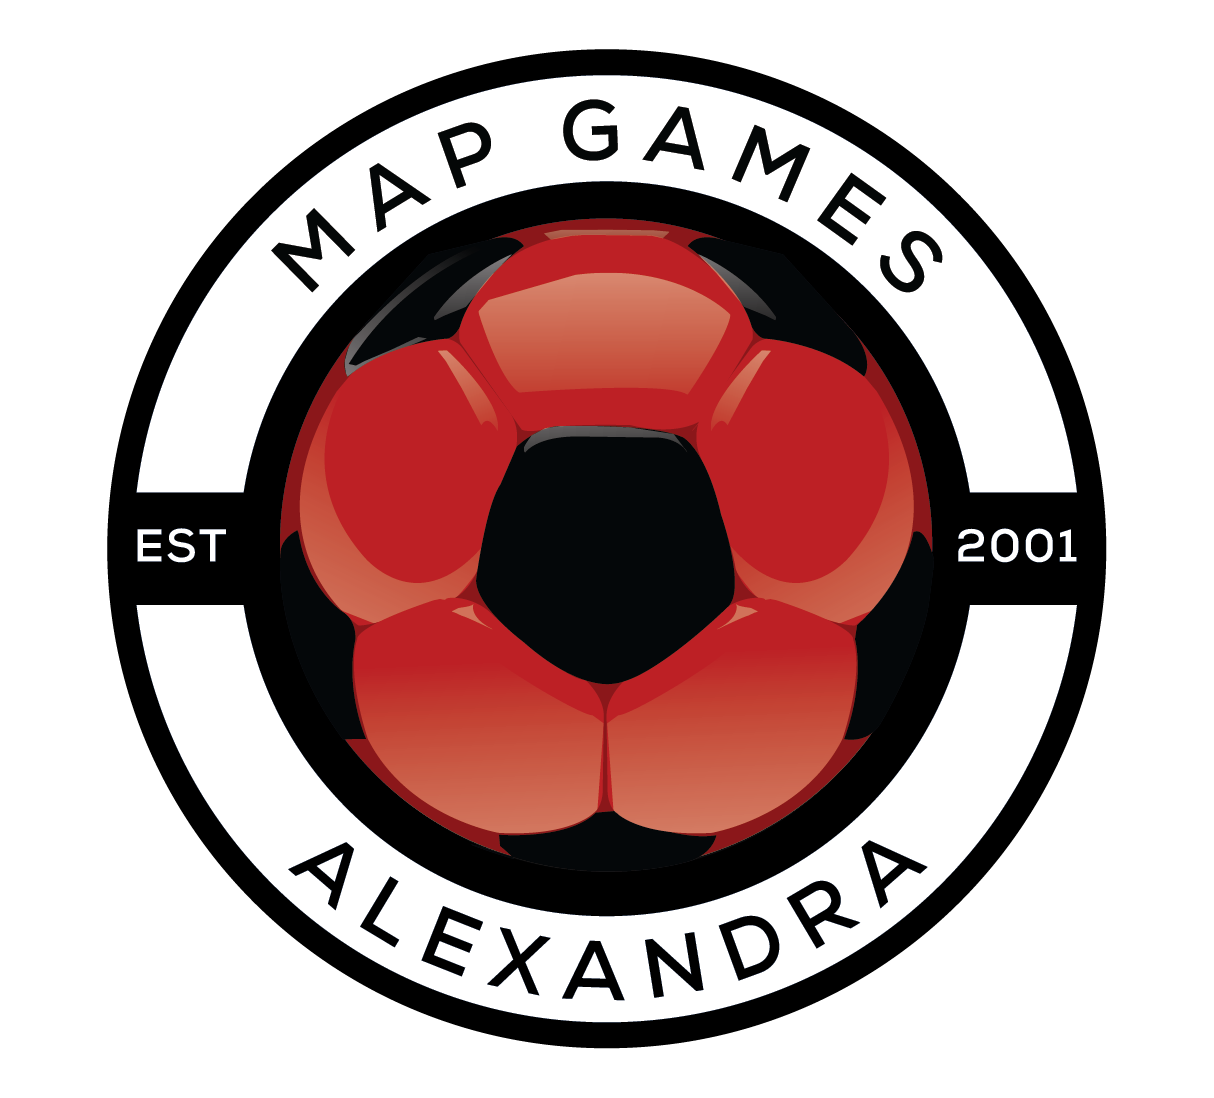 Map Games